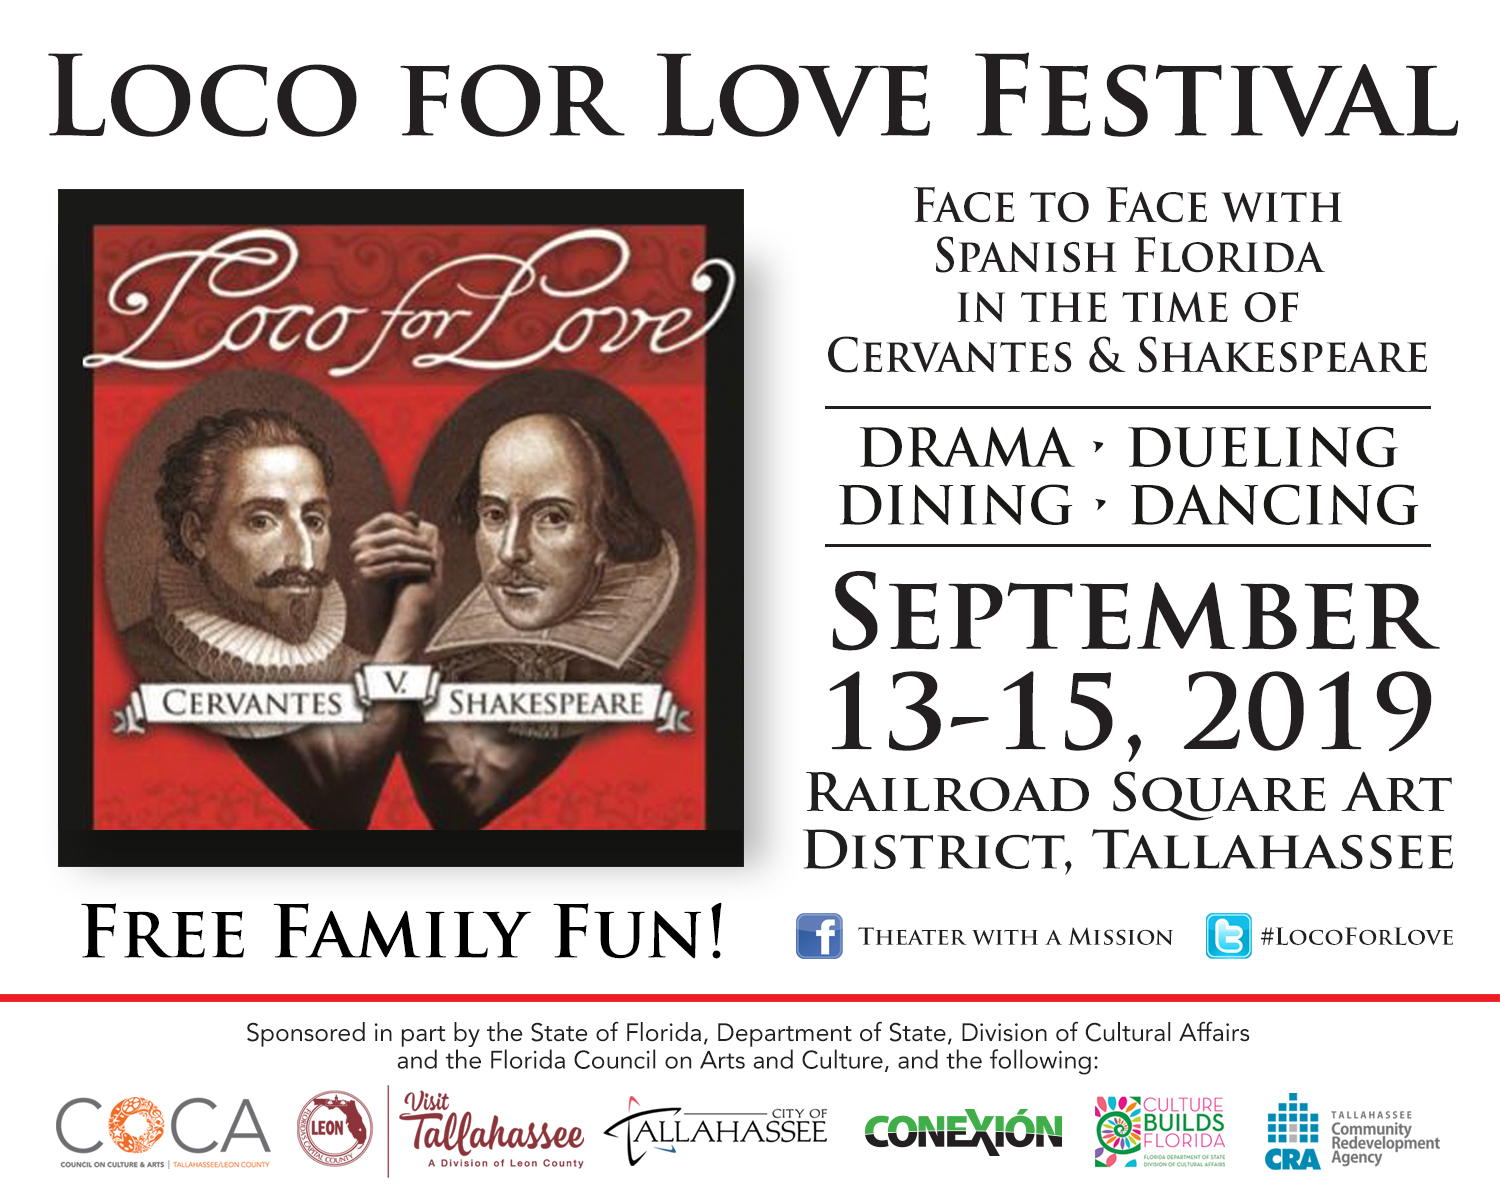 Theatre With A Mission: Loco for Love